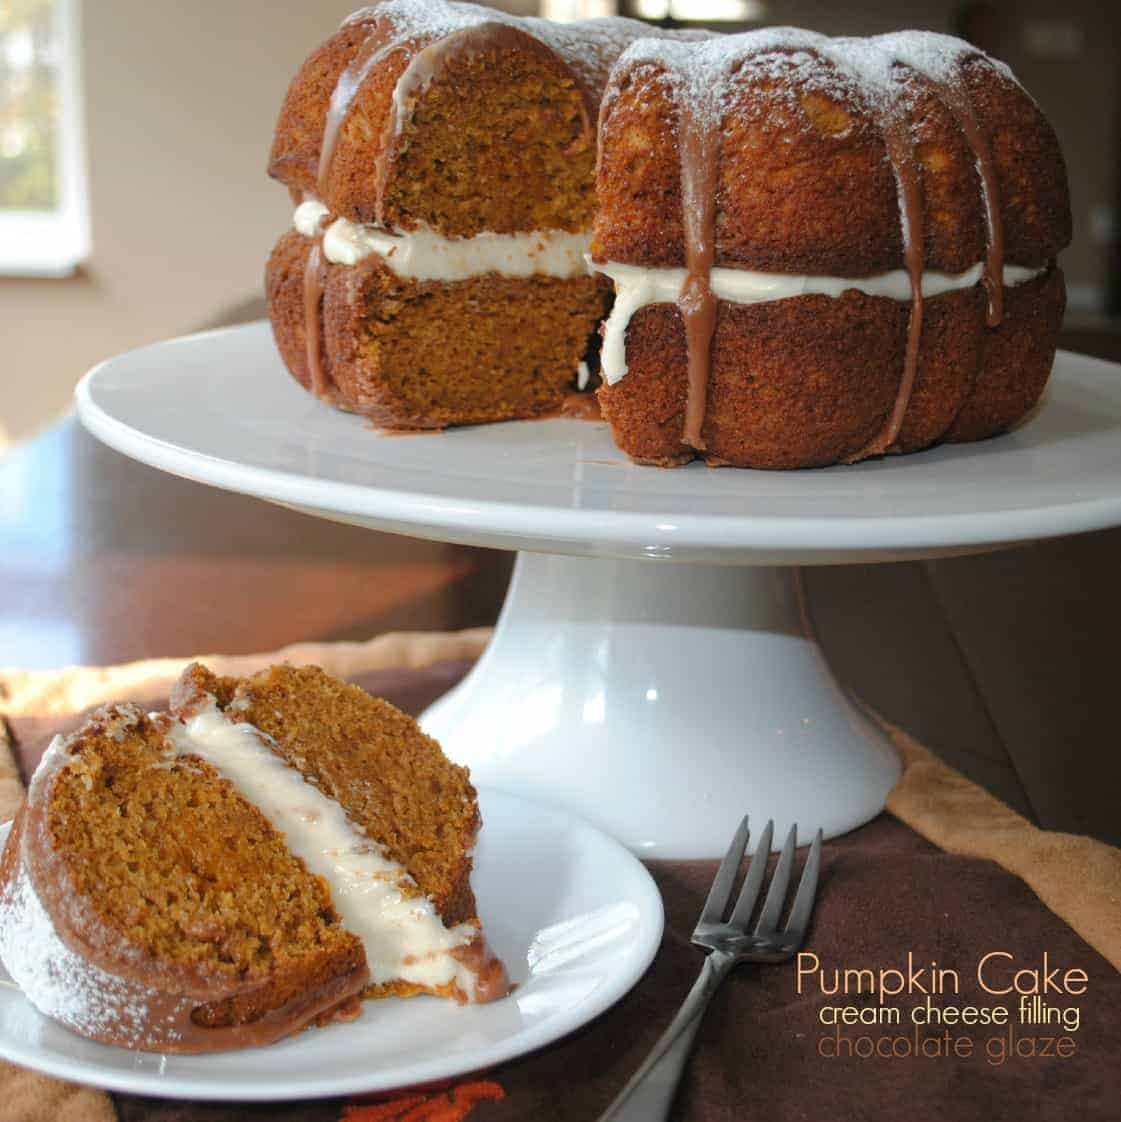 Pumpkin Cake With Cream Cheese Filling And Chocolate Ganache